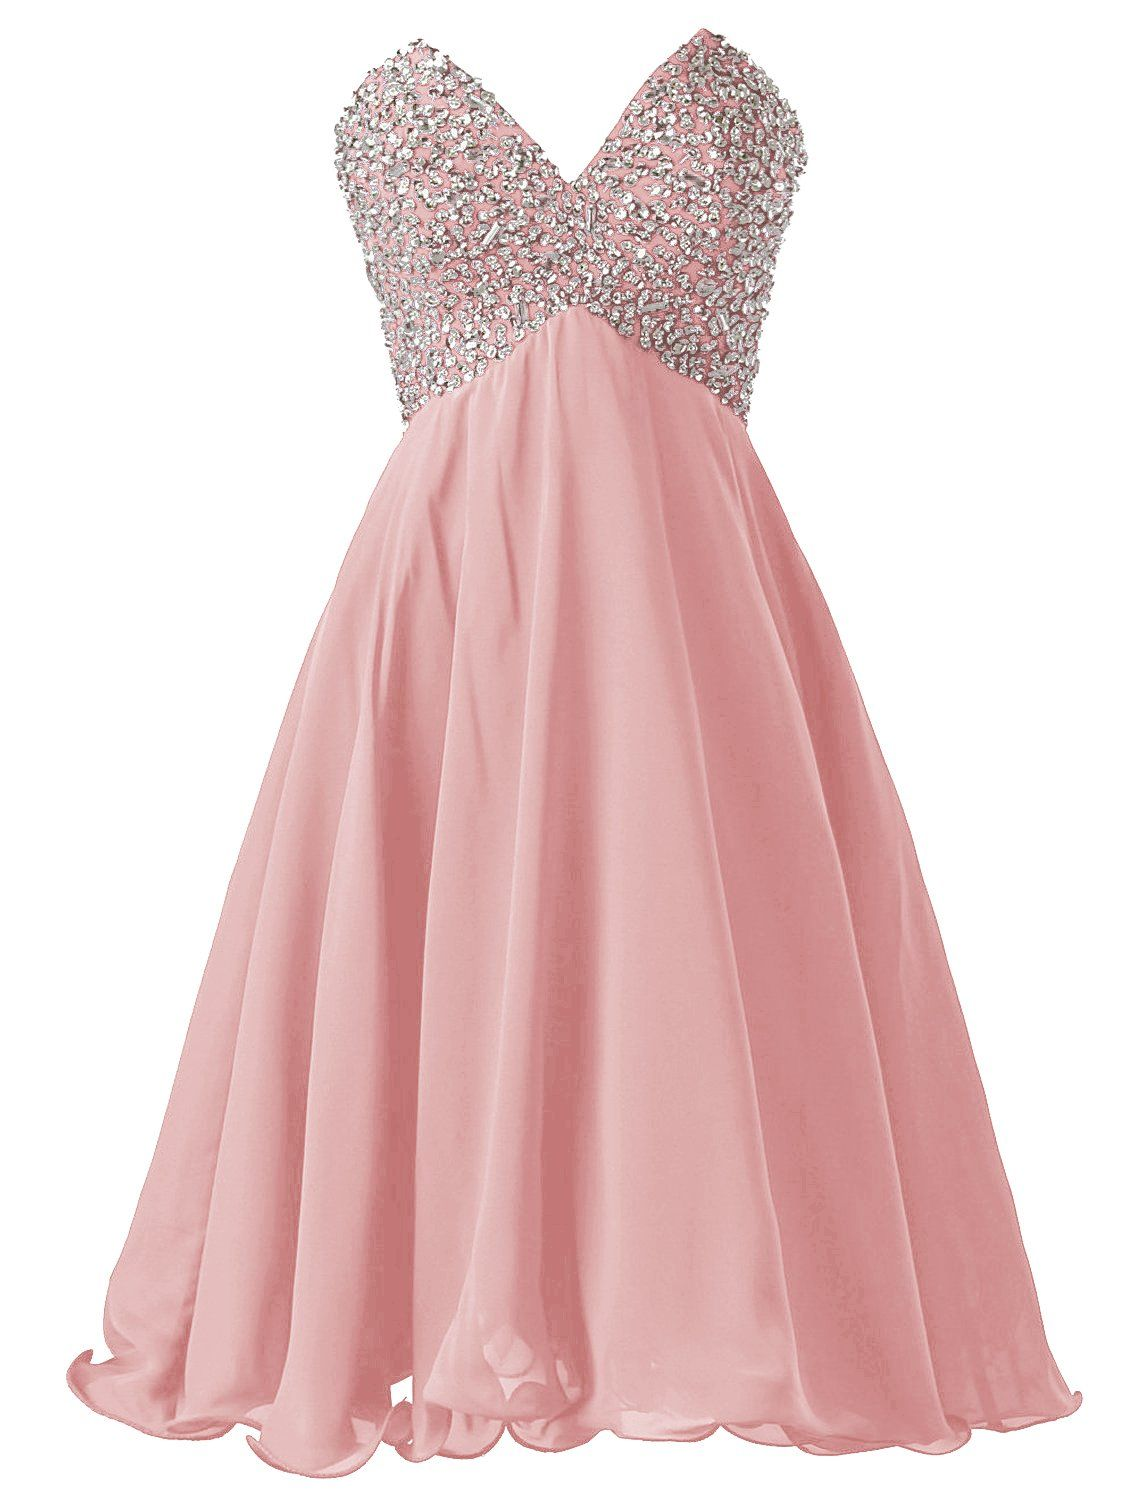 90342d4d928 Dressystar Short Graduation Homecoming Dress Beaded Prom Cocktail Dresses  Lace-up